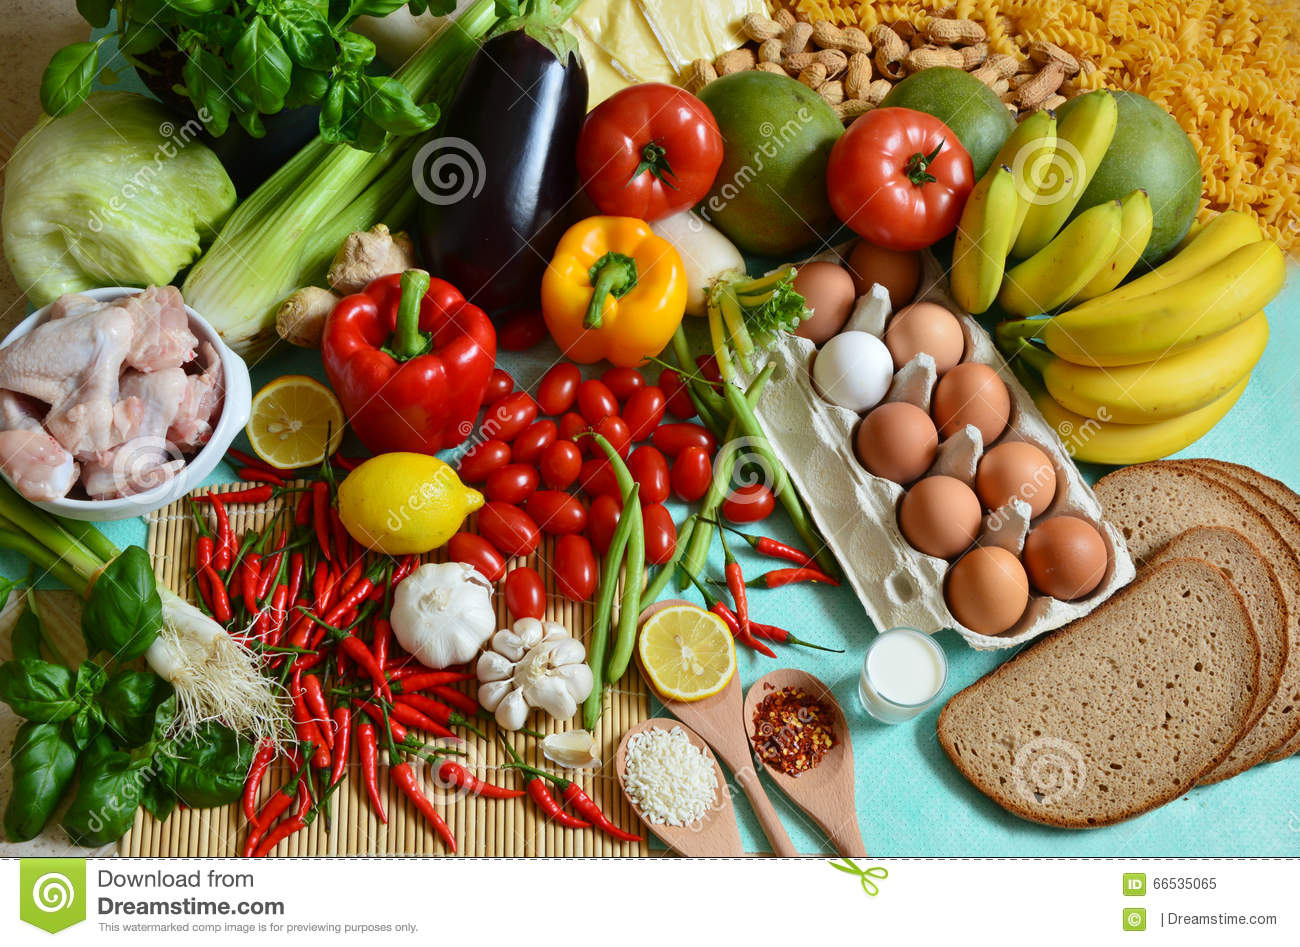 The 5 Food Groups Stock Image Image Of Chicken Fruit